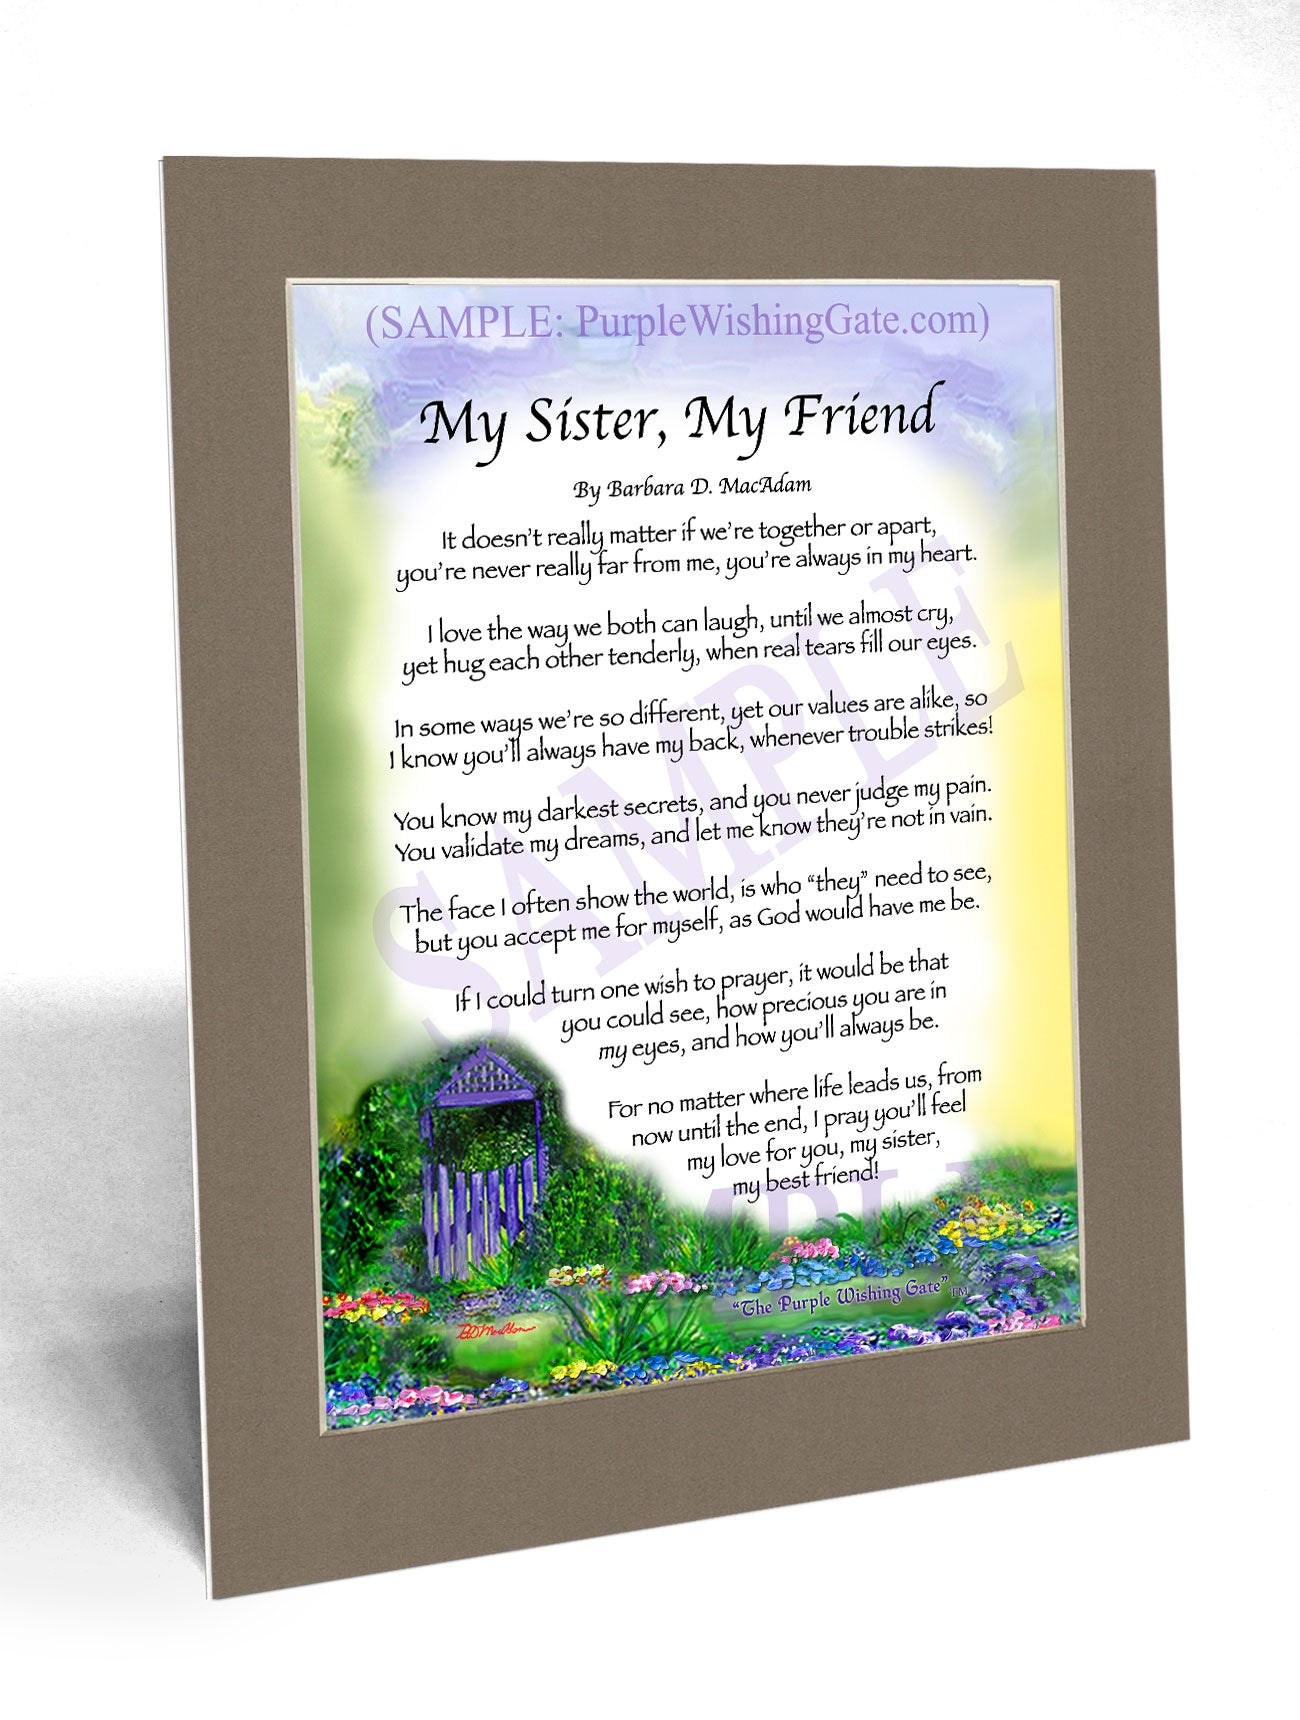 My Sister, My Friend - Sister-Women Gift - PurpleWishingGate.com